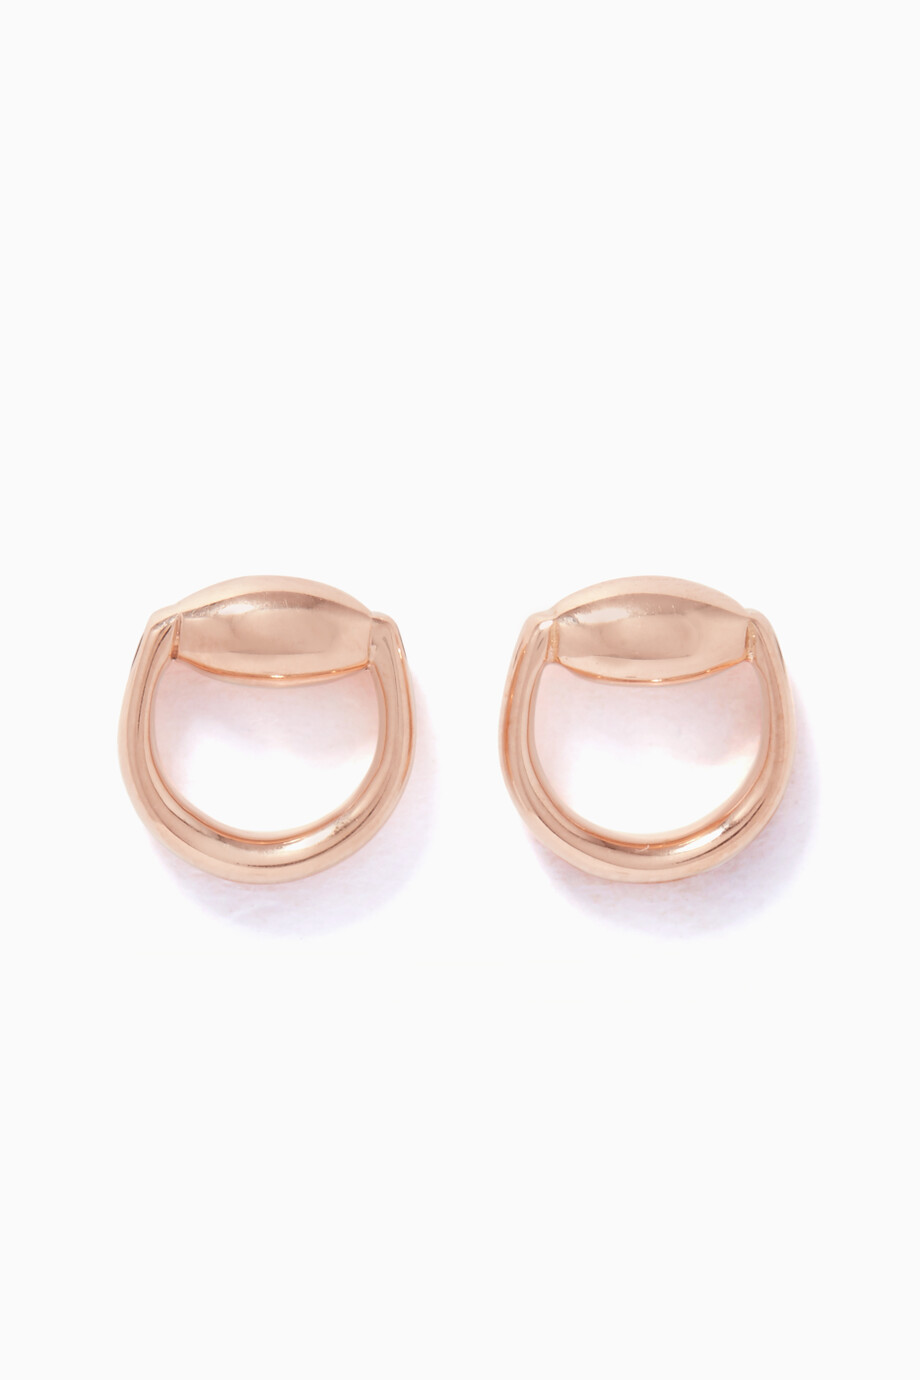 7d0d2b57e Shop Gucci Rose Gold Rose-Gold Horsebit Stud Earrings for Women ...